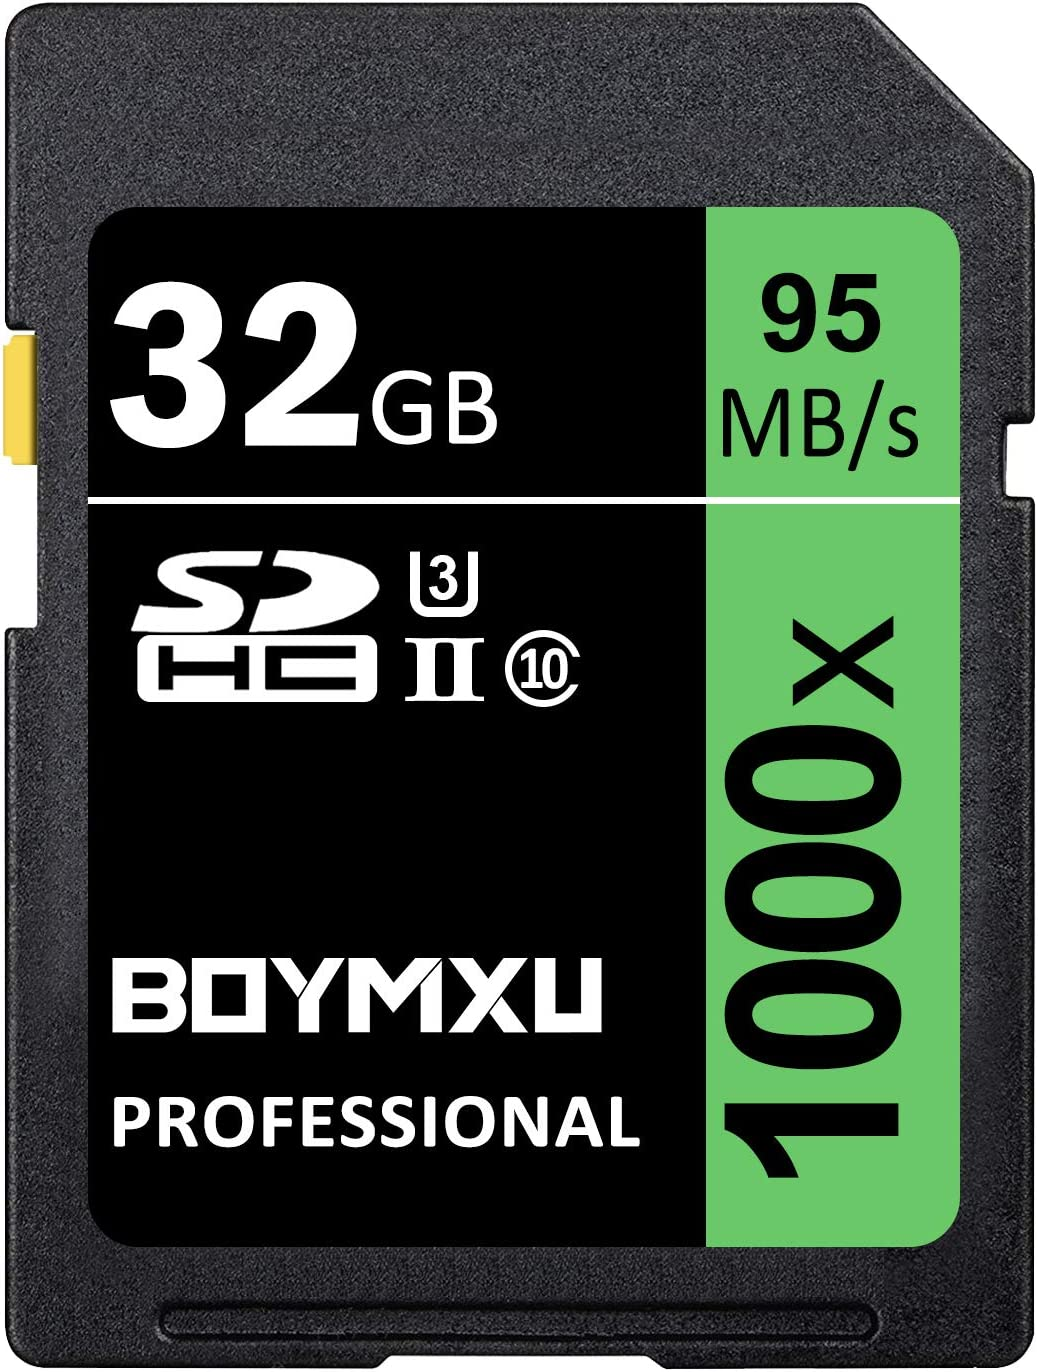 32GB SD Card, BOYMXU Professional 1000 x Class 10 SDHC UHS-I U3 Memory Card Compatible Computer Cameras and Camcorders, SD Memory Card Up to 95MB/s, ...